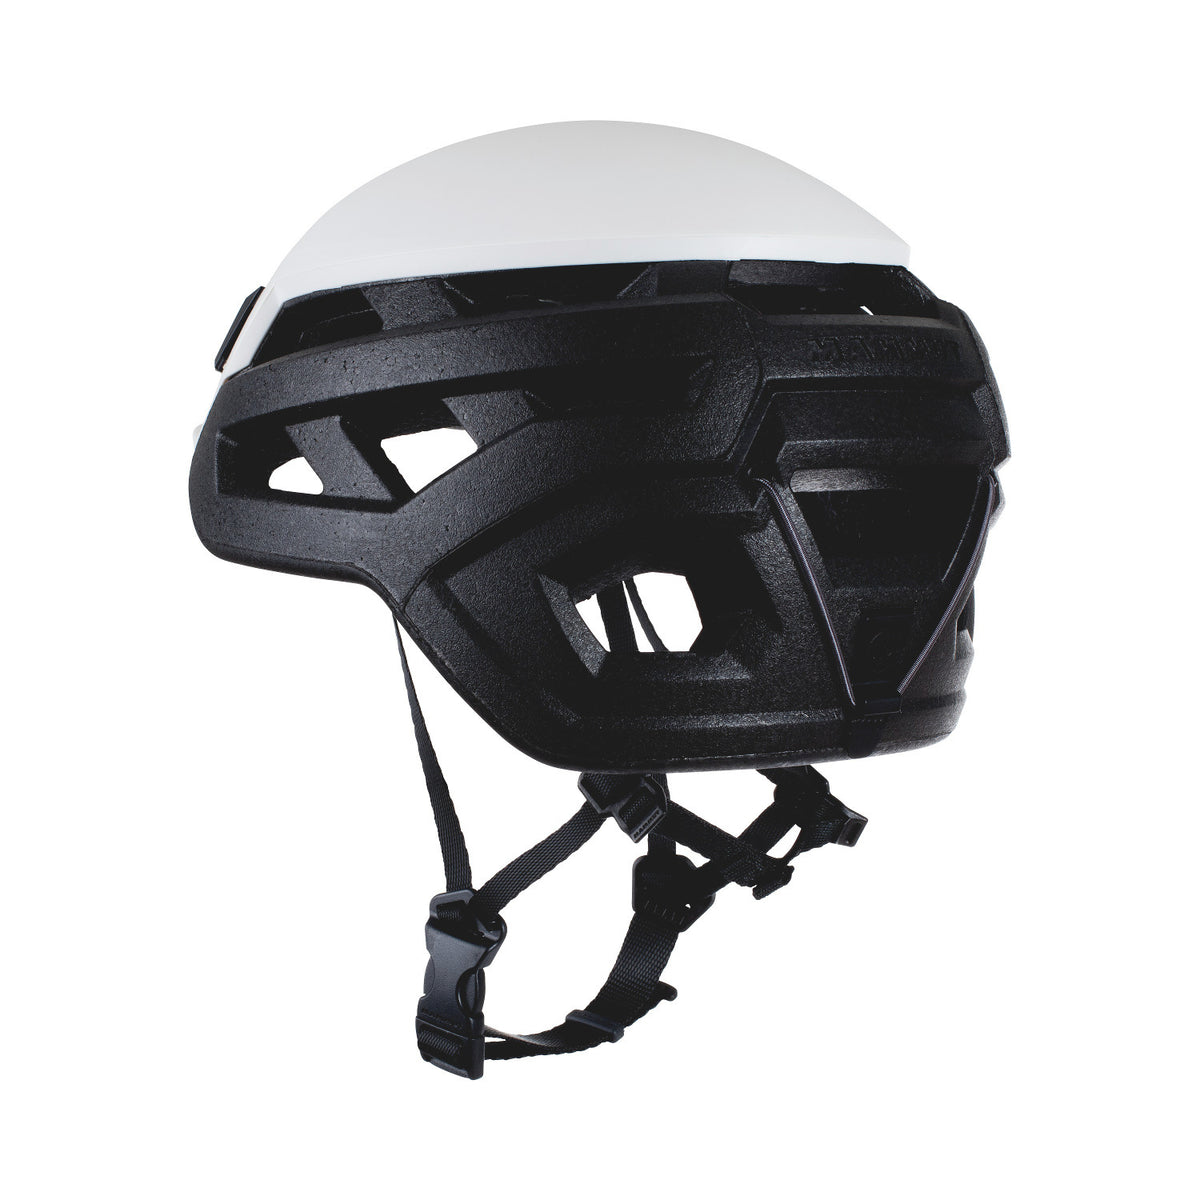 Mammut Wall Rider climbing helmet, outer side view